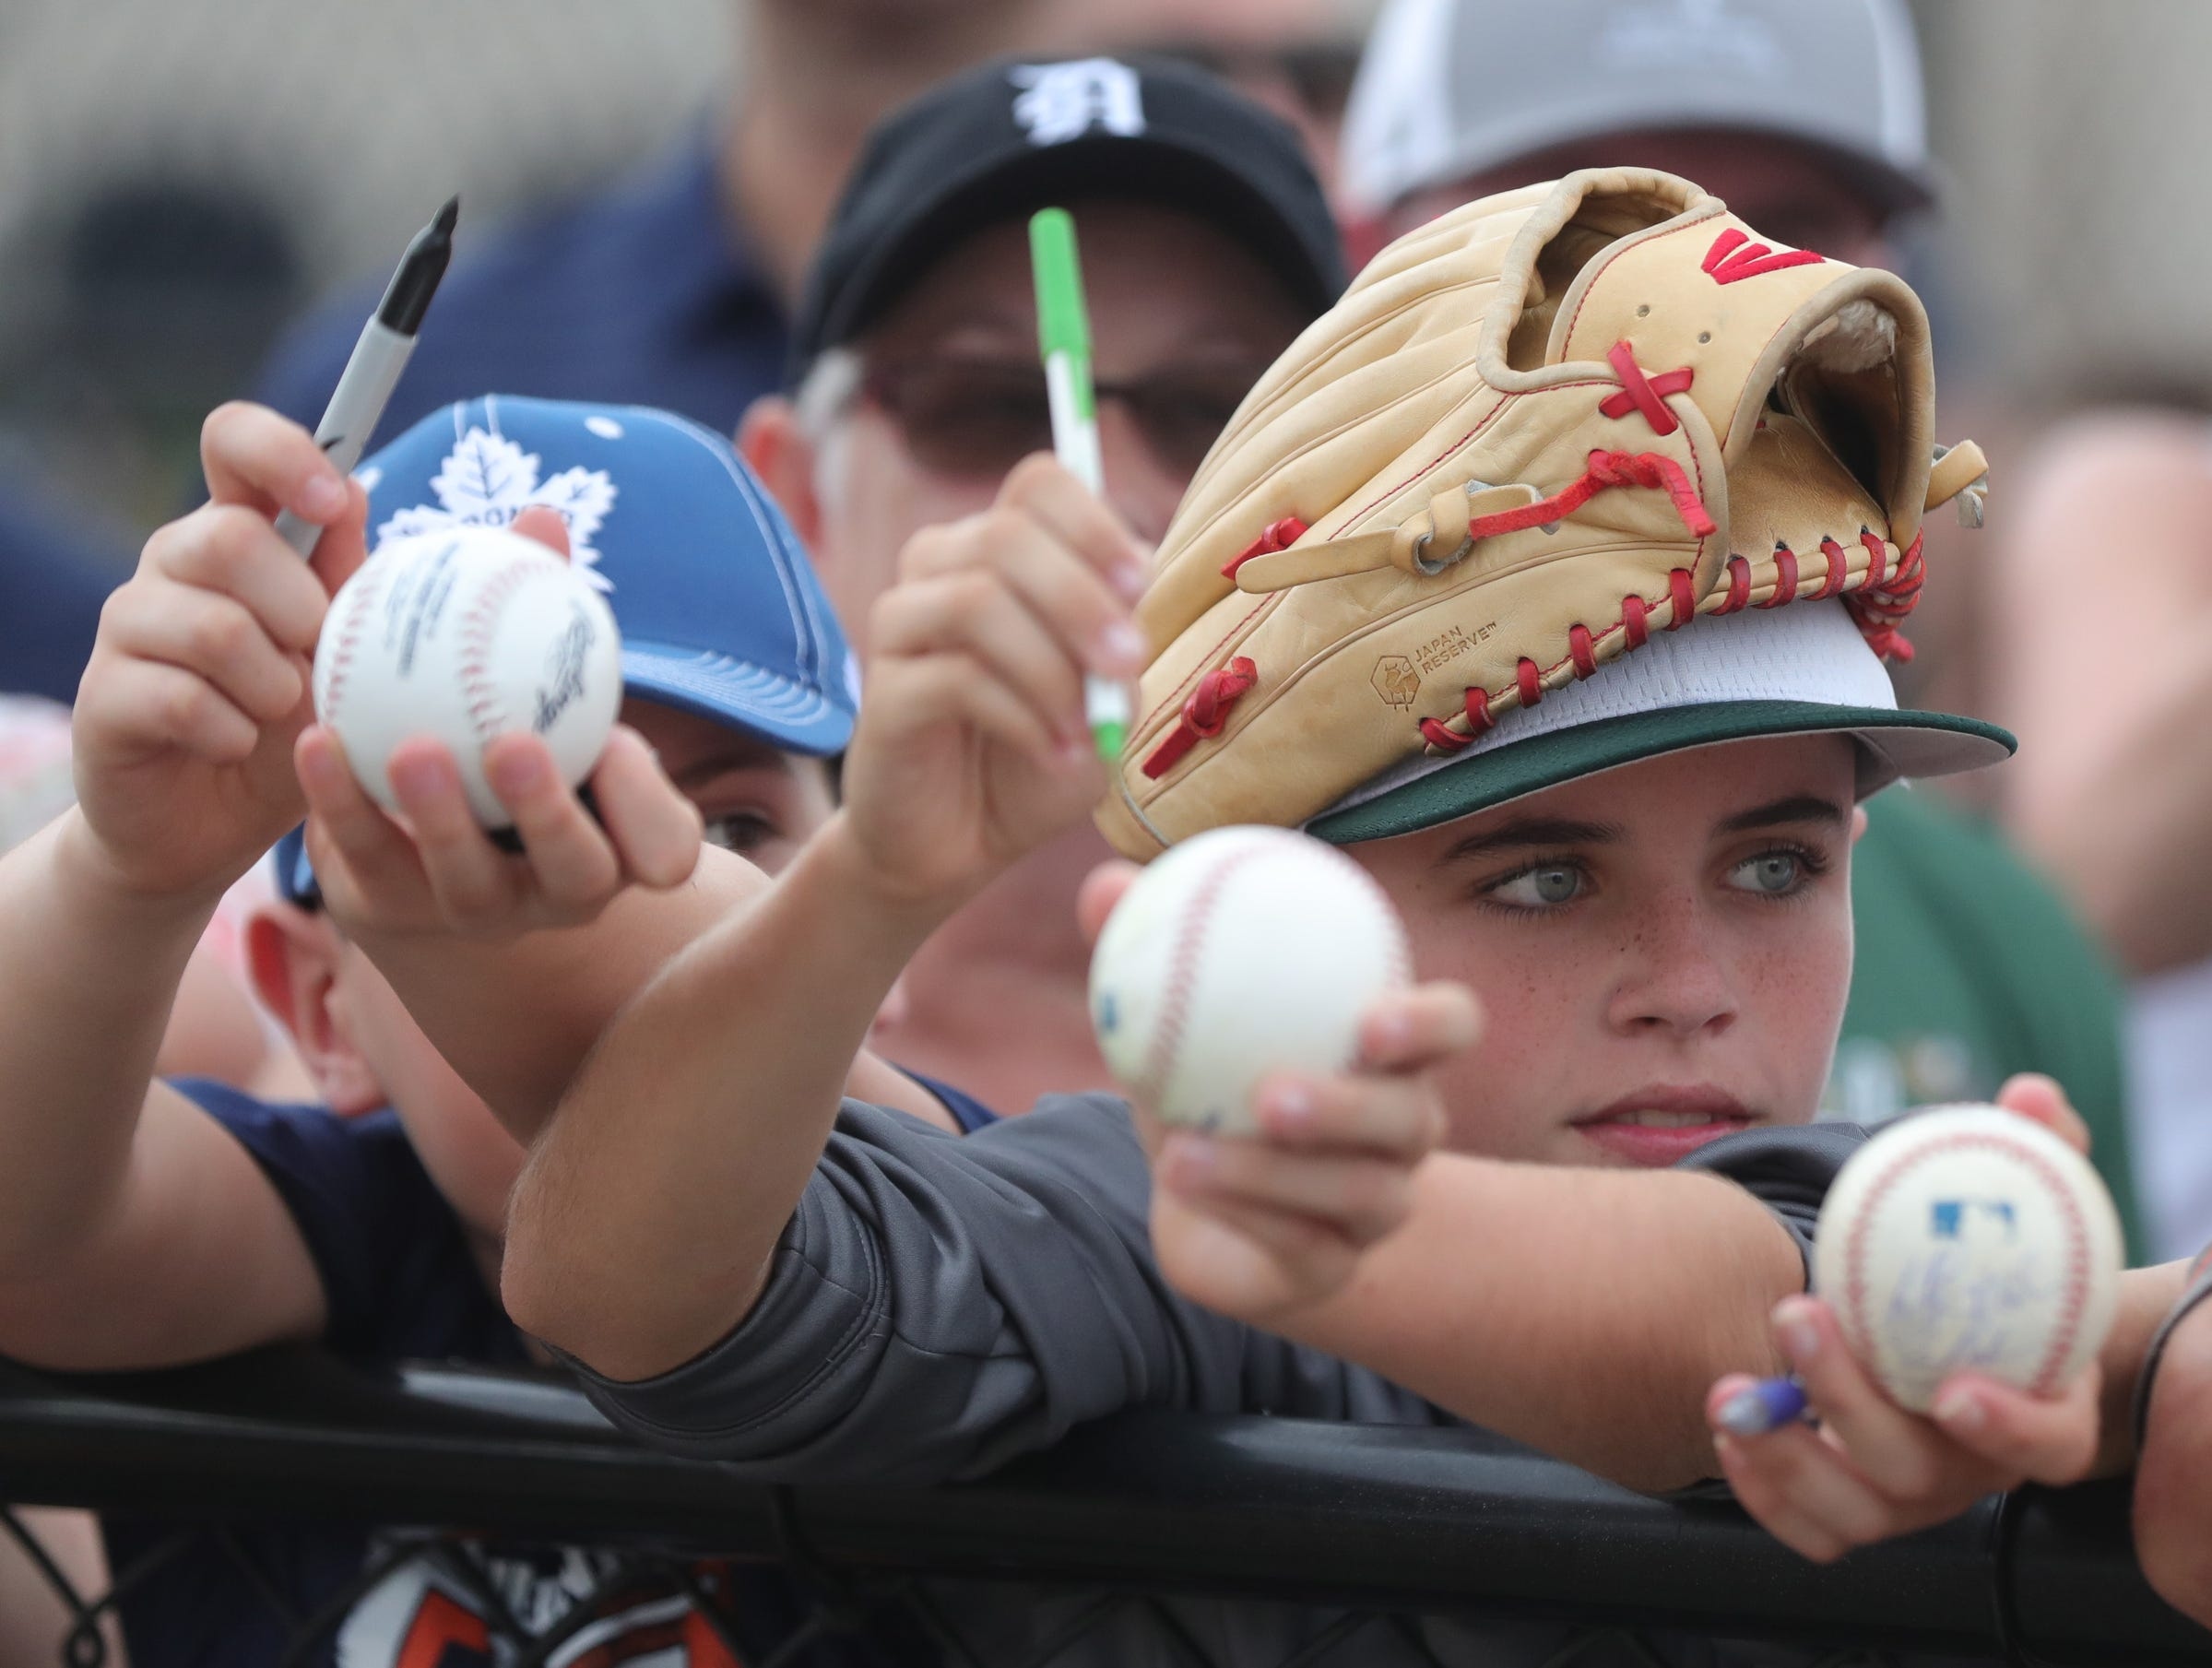 Tigers fan Deaglan McBride waits for autographs during the first full team spring training practice on Monday, Feb. 18, 2019, at Joker Marchant Stadium in Lakeland, Florida.